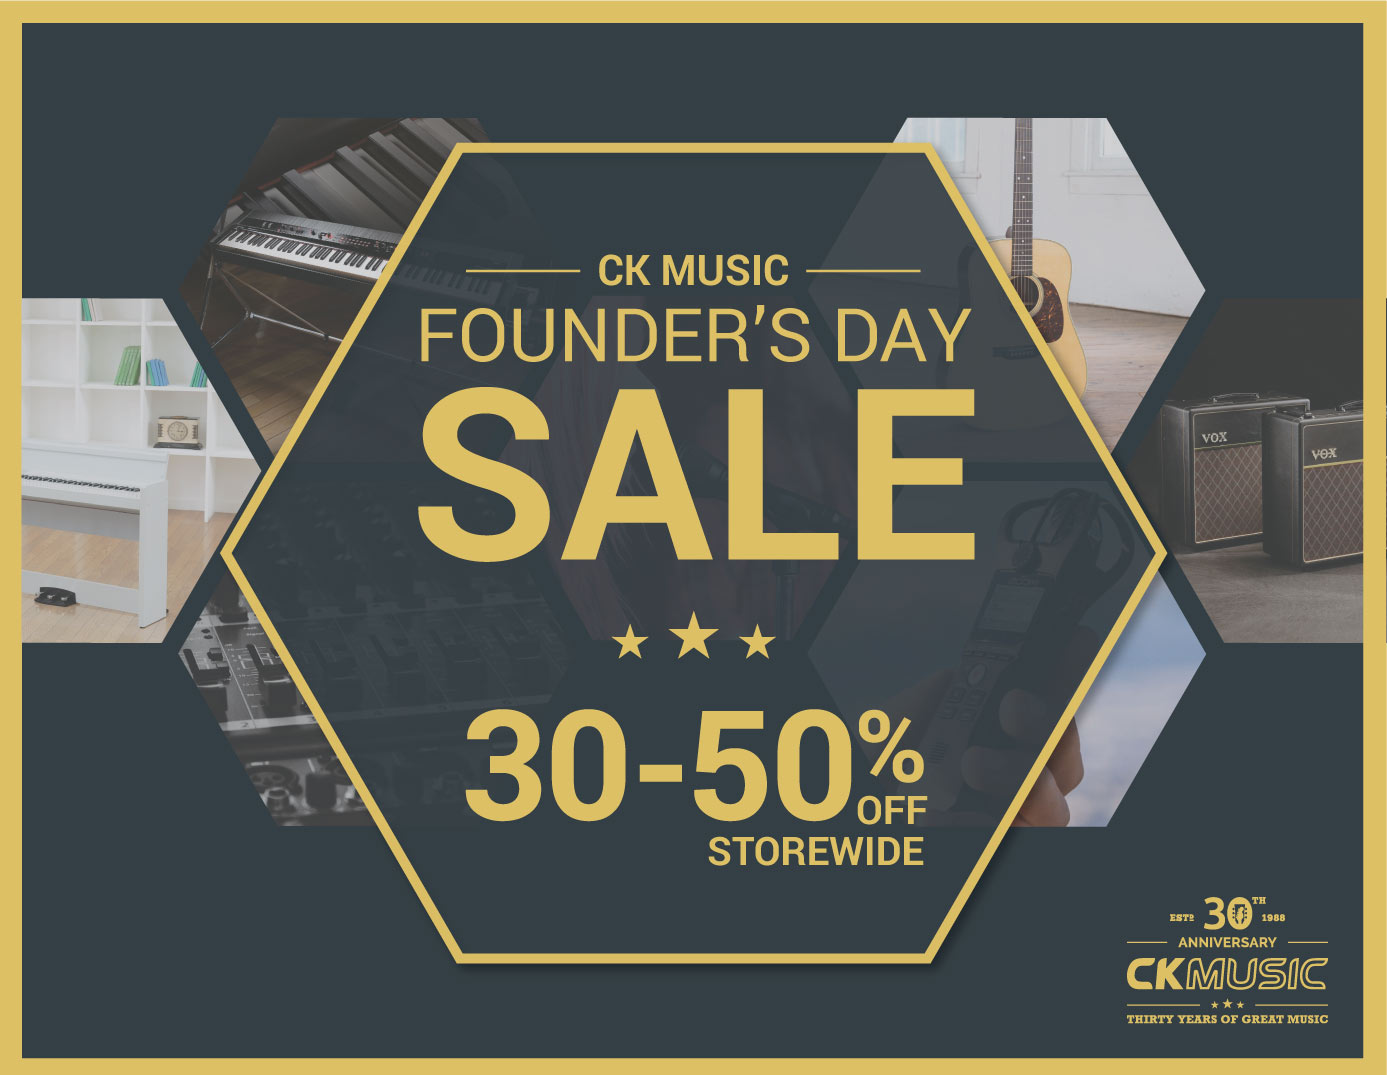 CK Music Founder's Day